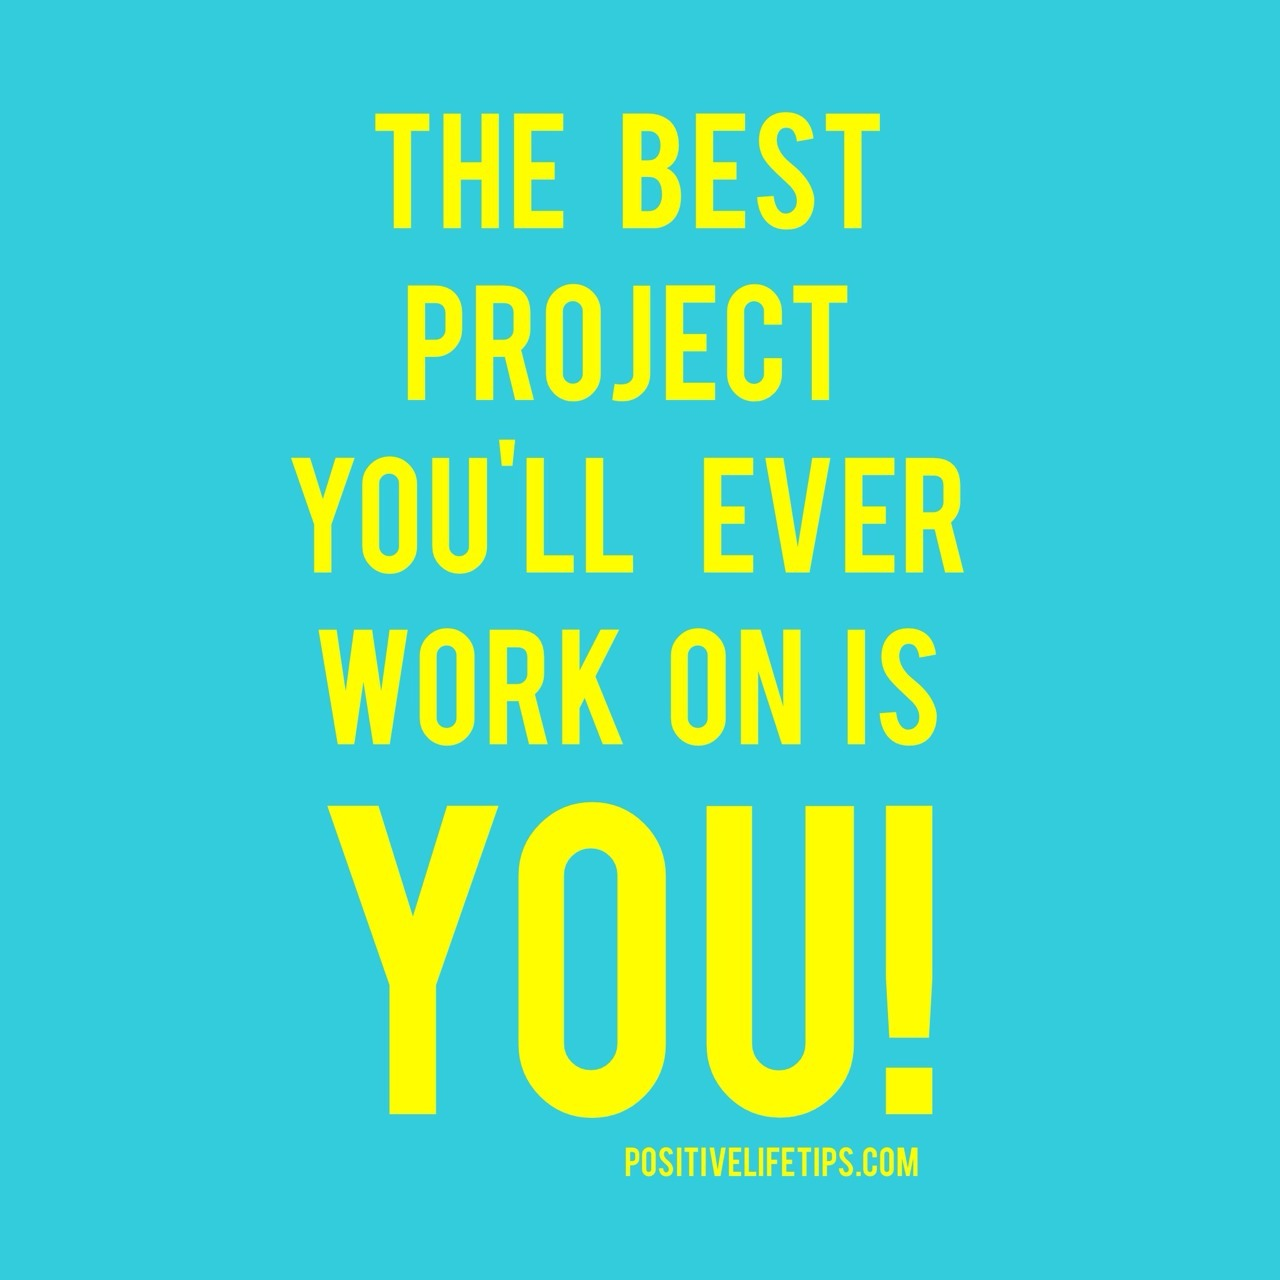 The best project you'll ever work on is you! Take time to take care of yourself! What areas of your life can you improve?